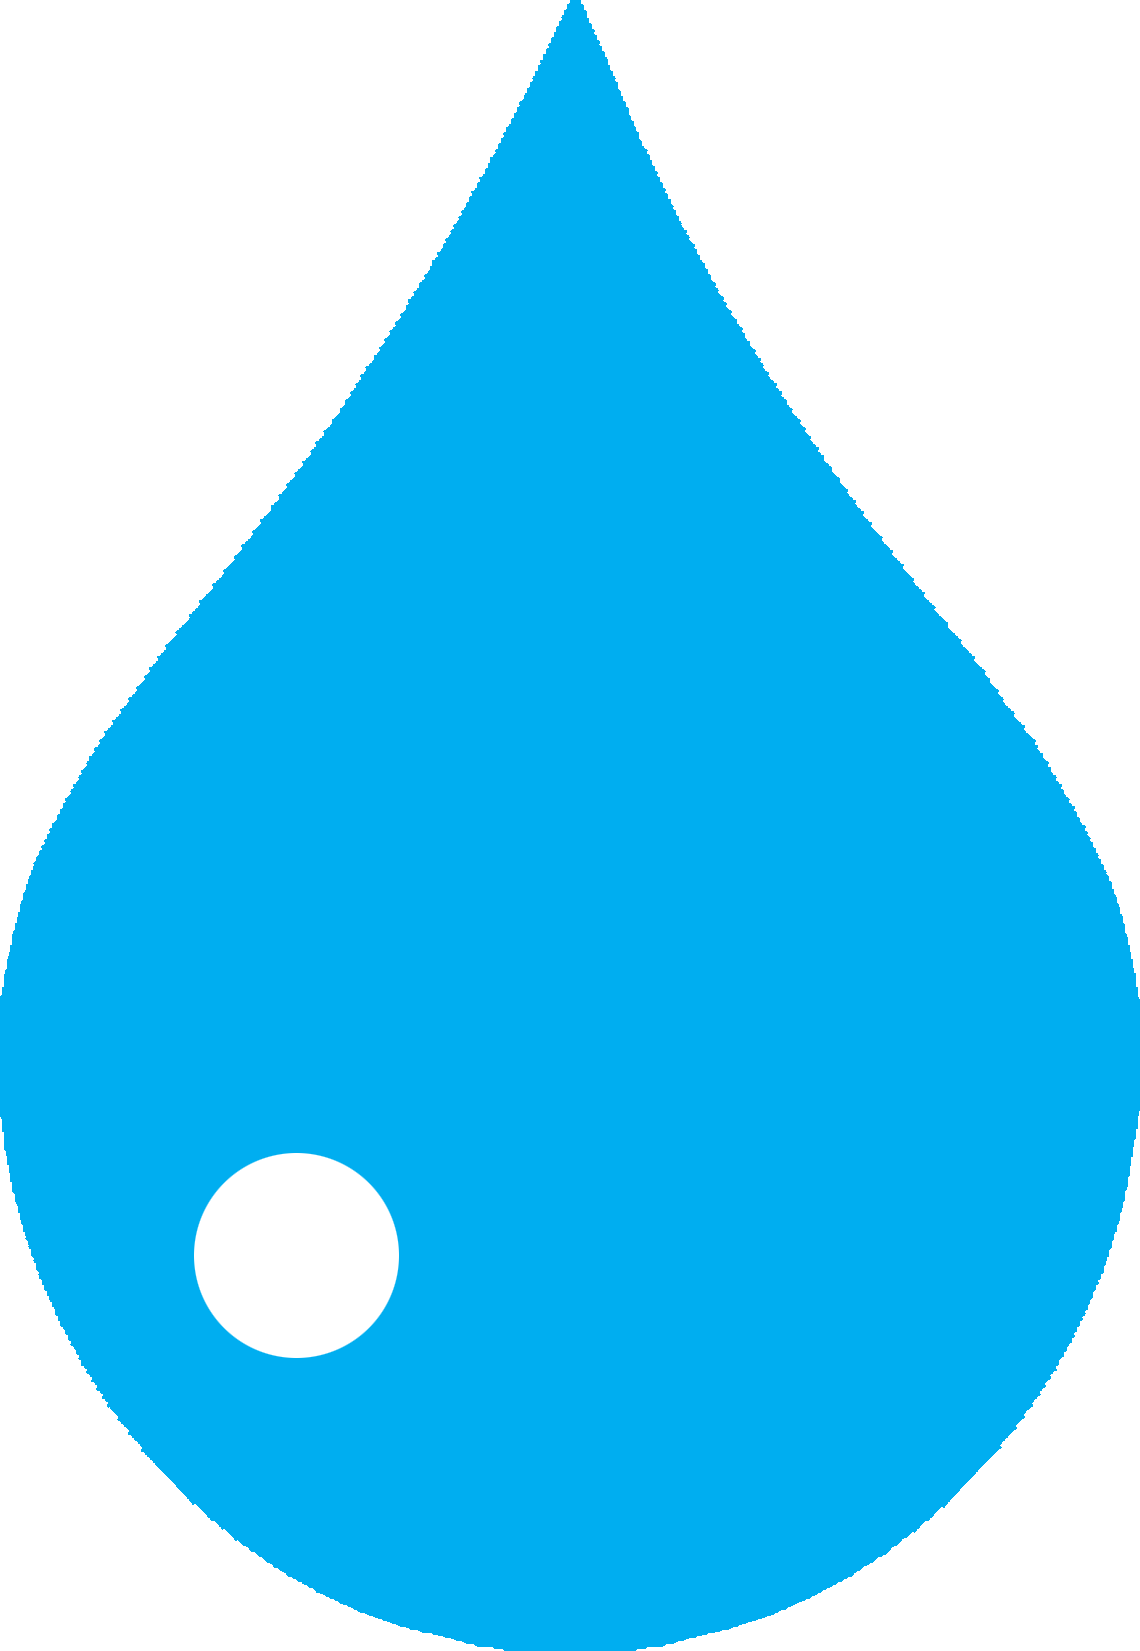 Waterdrop clipart clean drinking water Spotlight Water Center Prevention Access